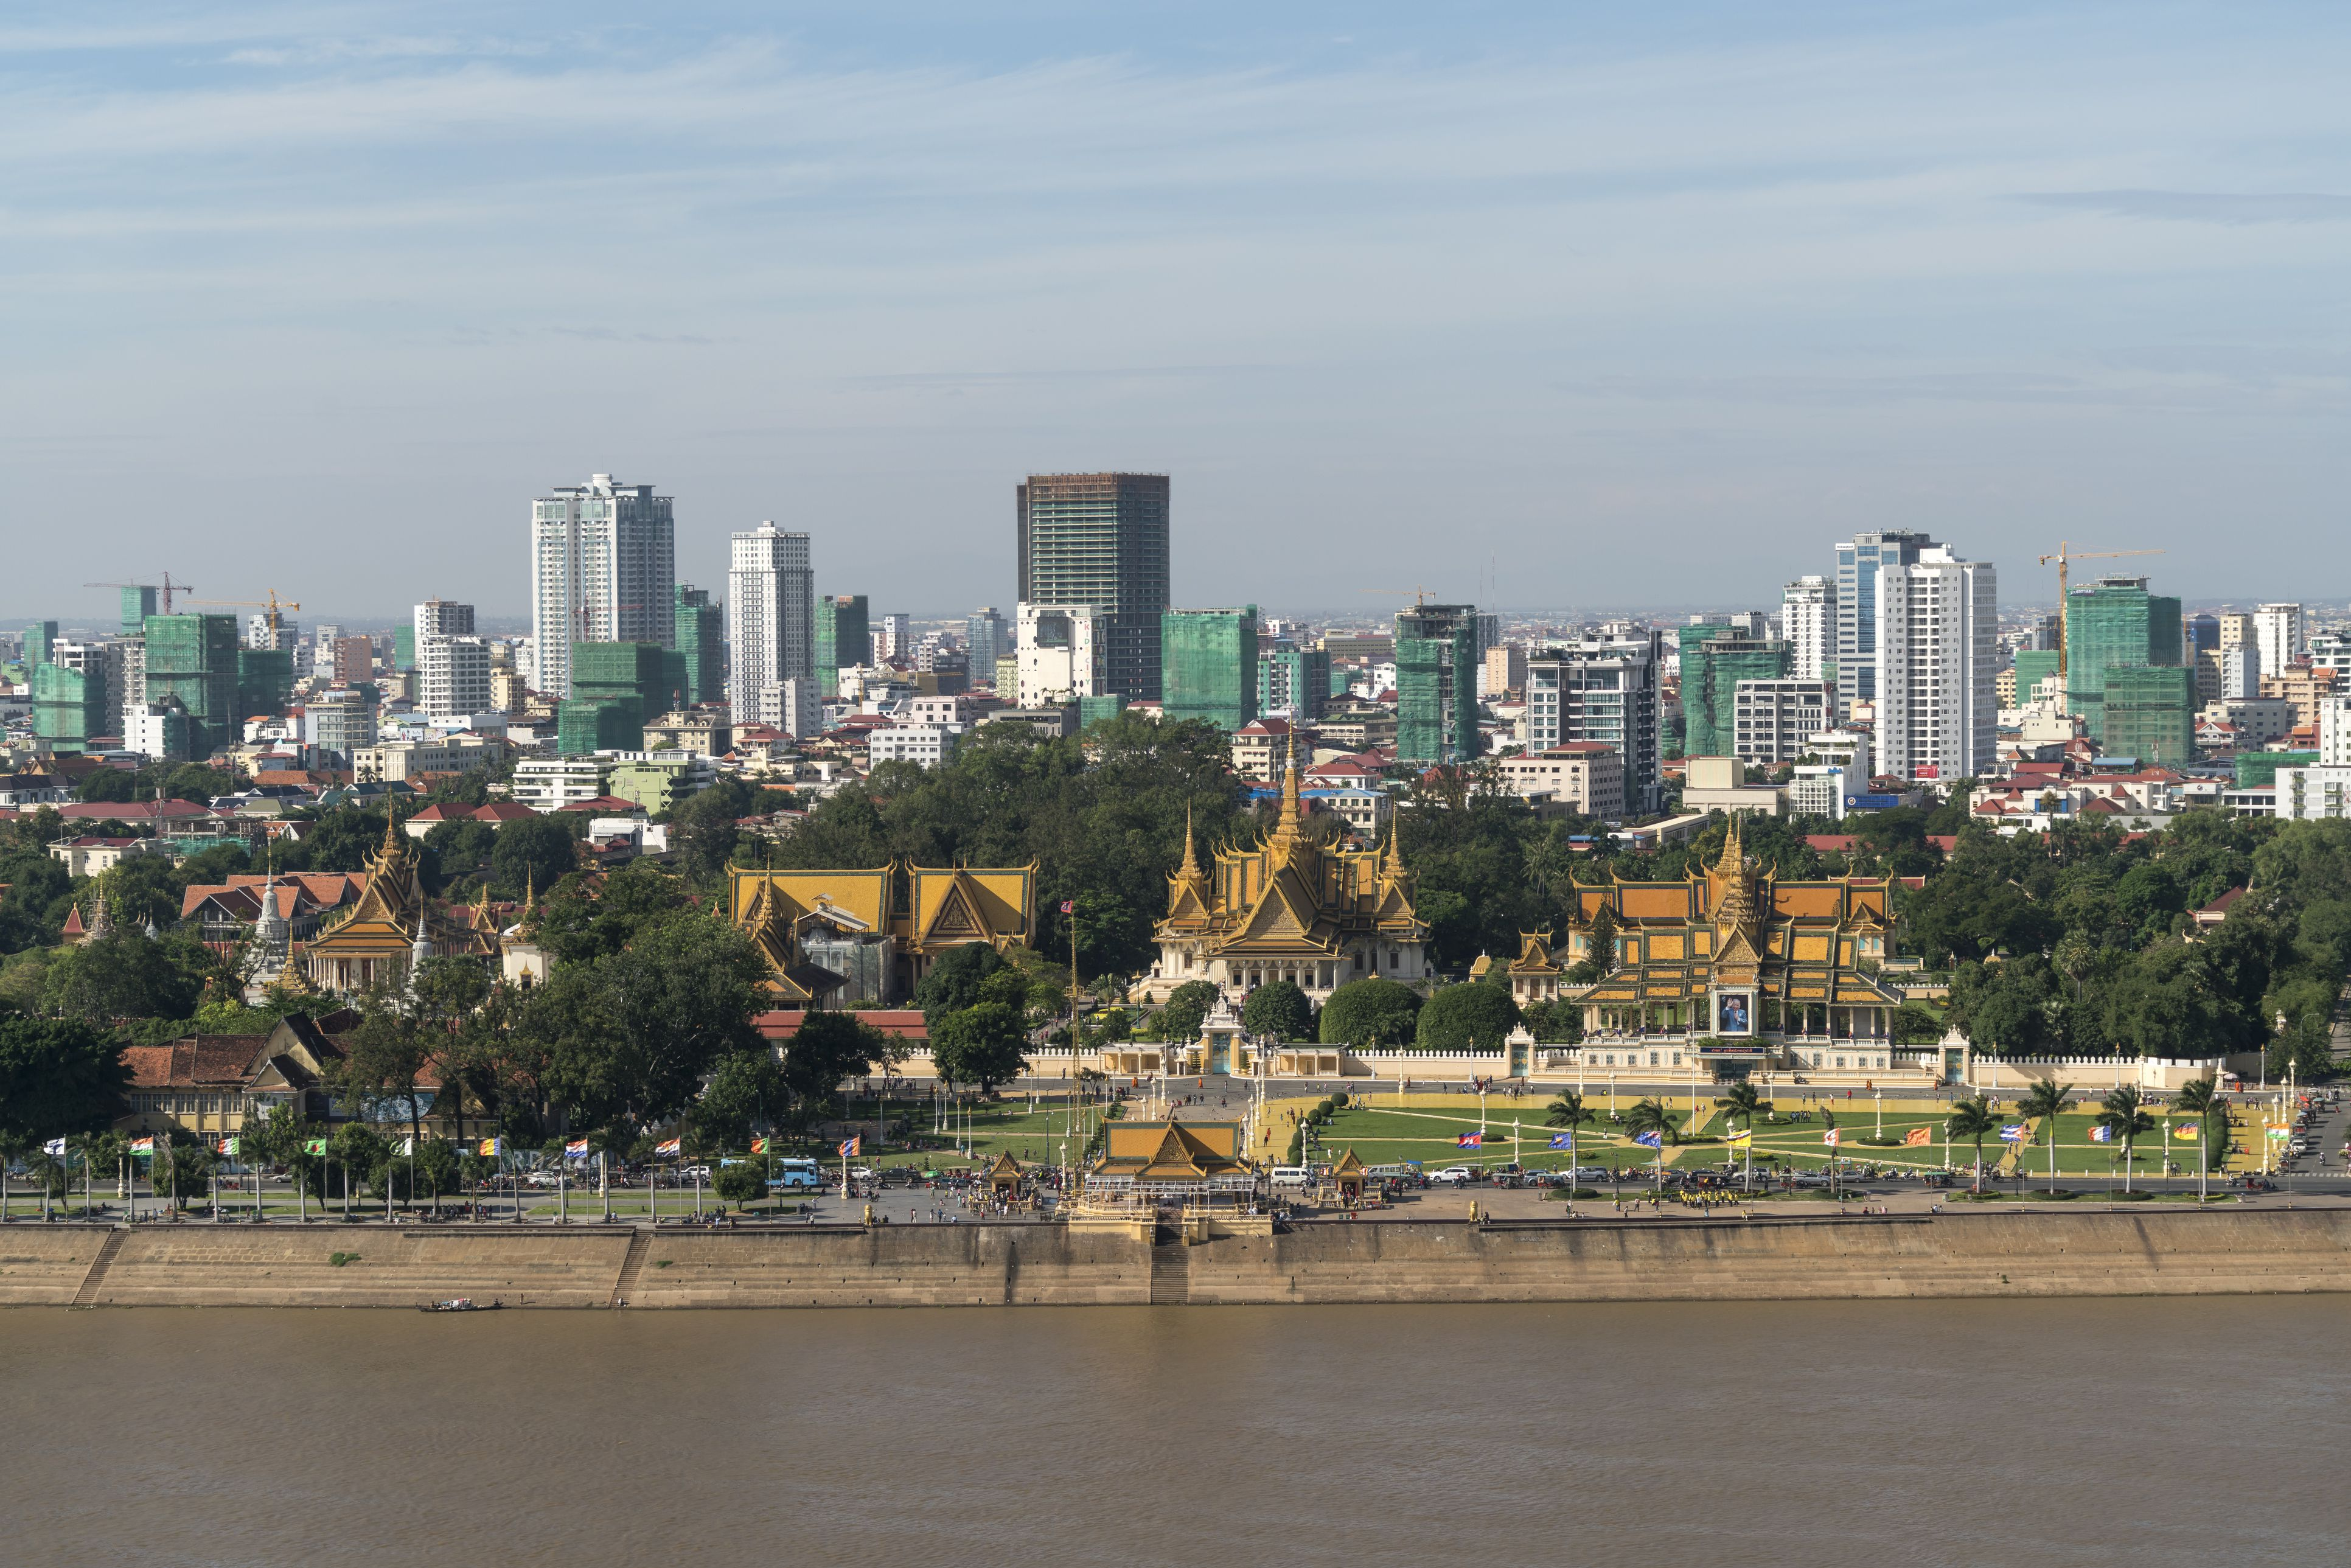 Phnom Penh - Capital of Cambodia - A Personal View